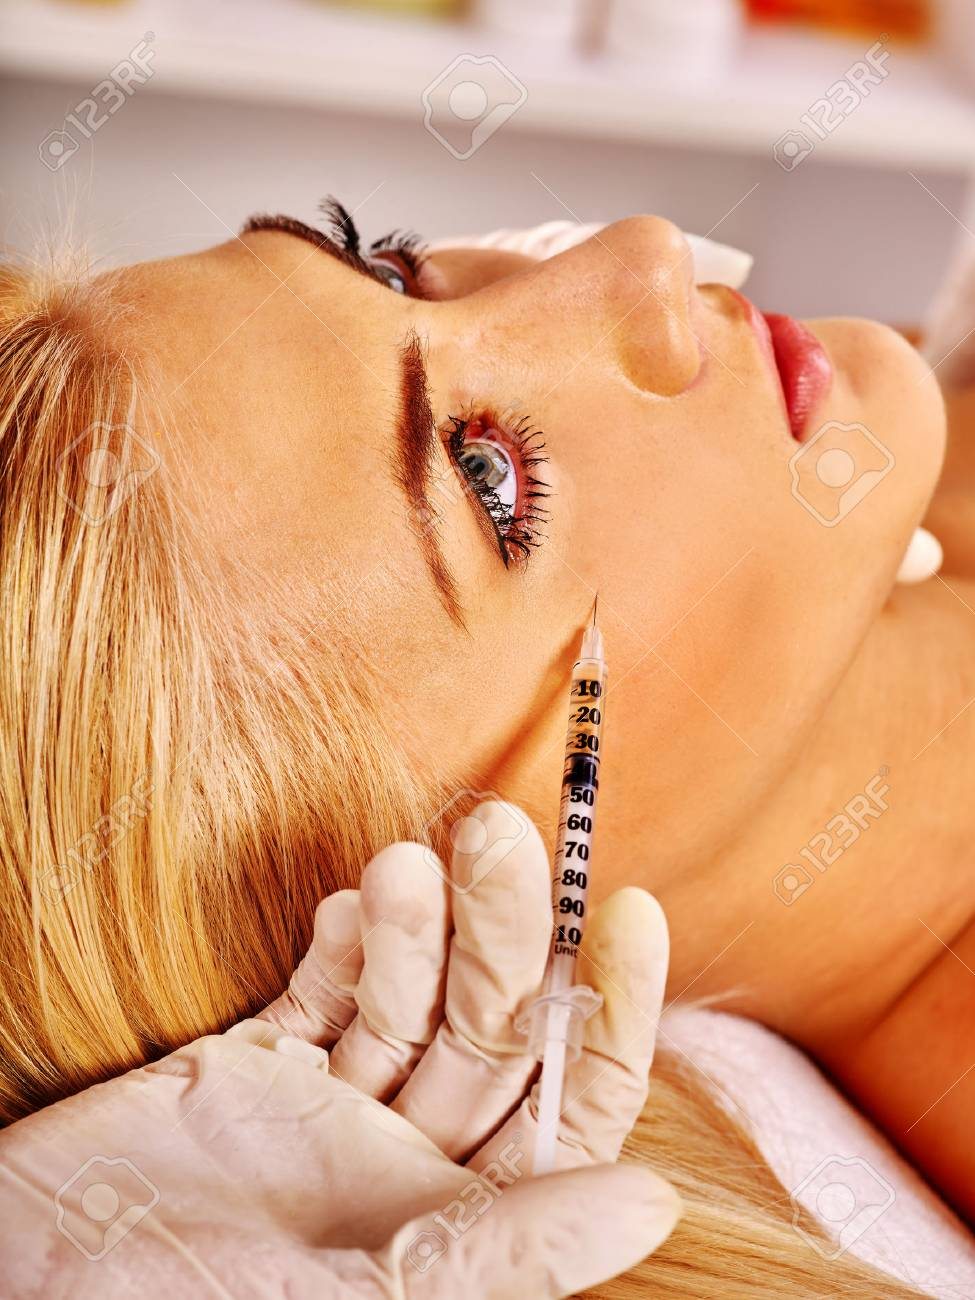 Doctor woman giving botox injections under eye